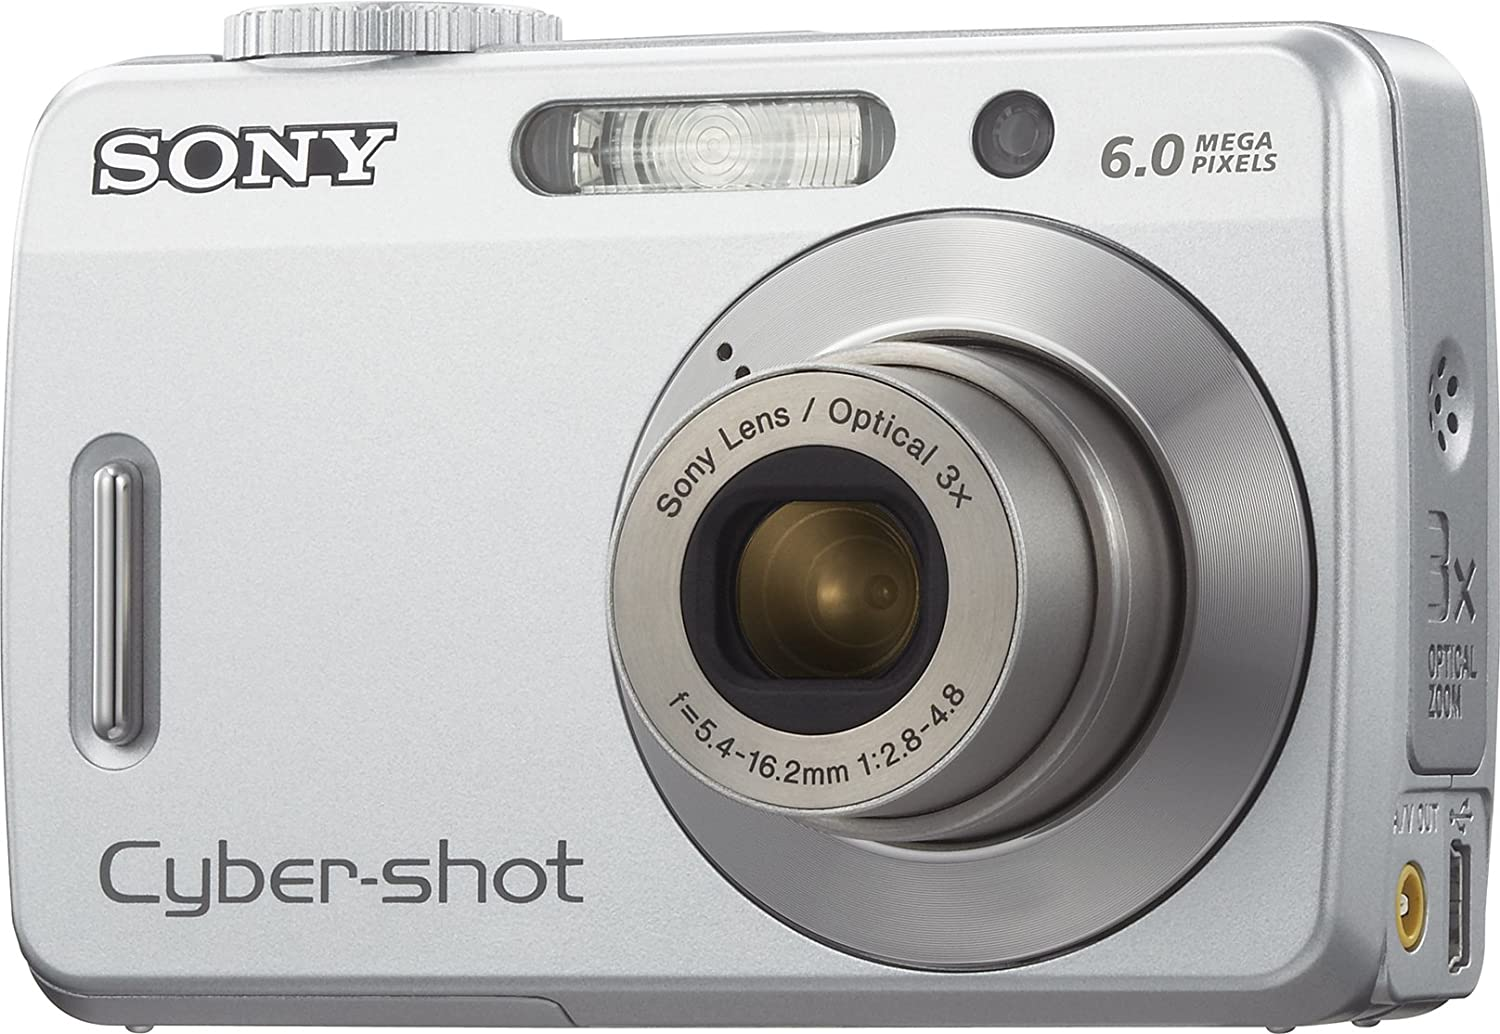 Amazon.com : Sony Cybershot S500 6MP Digital Camera with 3x Optical Zoom  (OLD MODEL) : Point And Shoot Digital Cameras : Camera & Photo